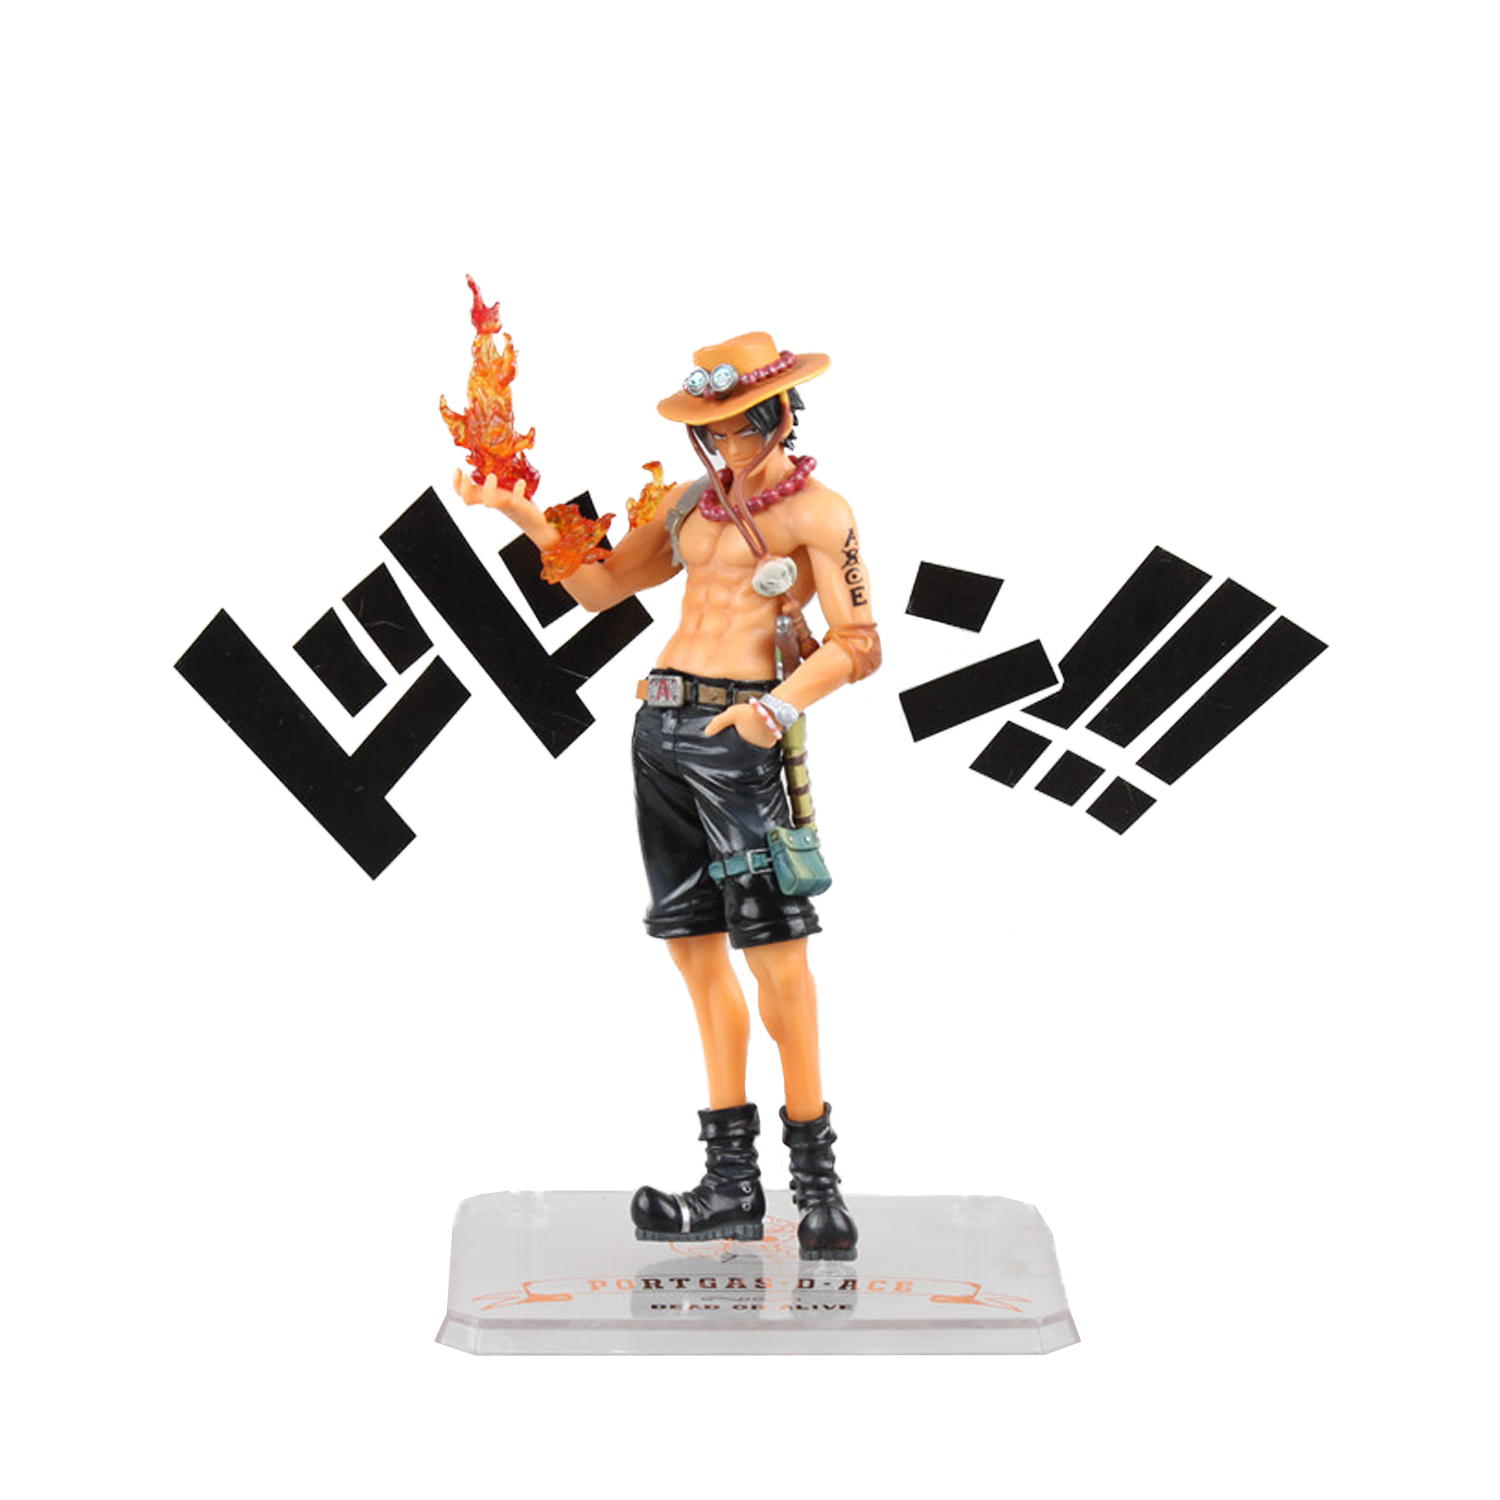 Chanycore Anime ONE PIECE 5th anniversary Portgas D Ace onepiece NEW WORLD PVC Action Figures 15CM collect model toys фигурка funko pop animation one piece portgas d ace 9 5 см